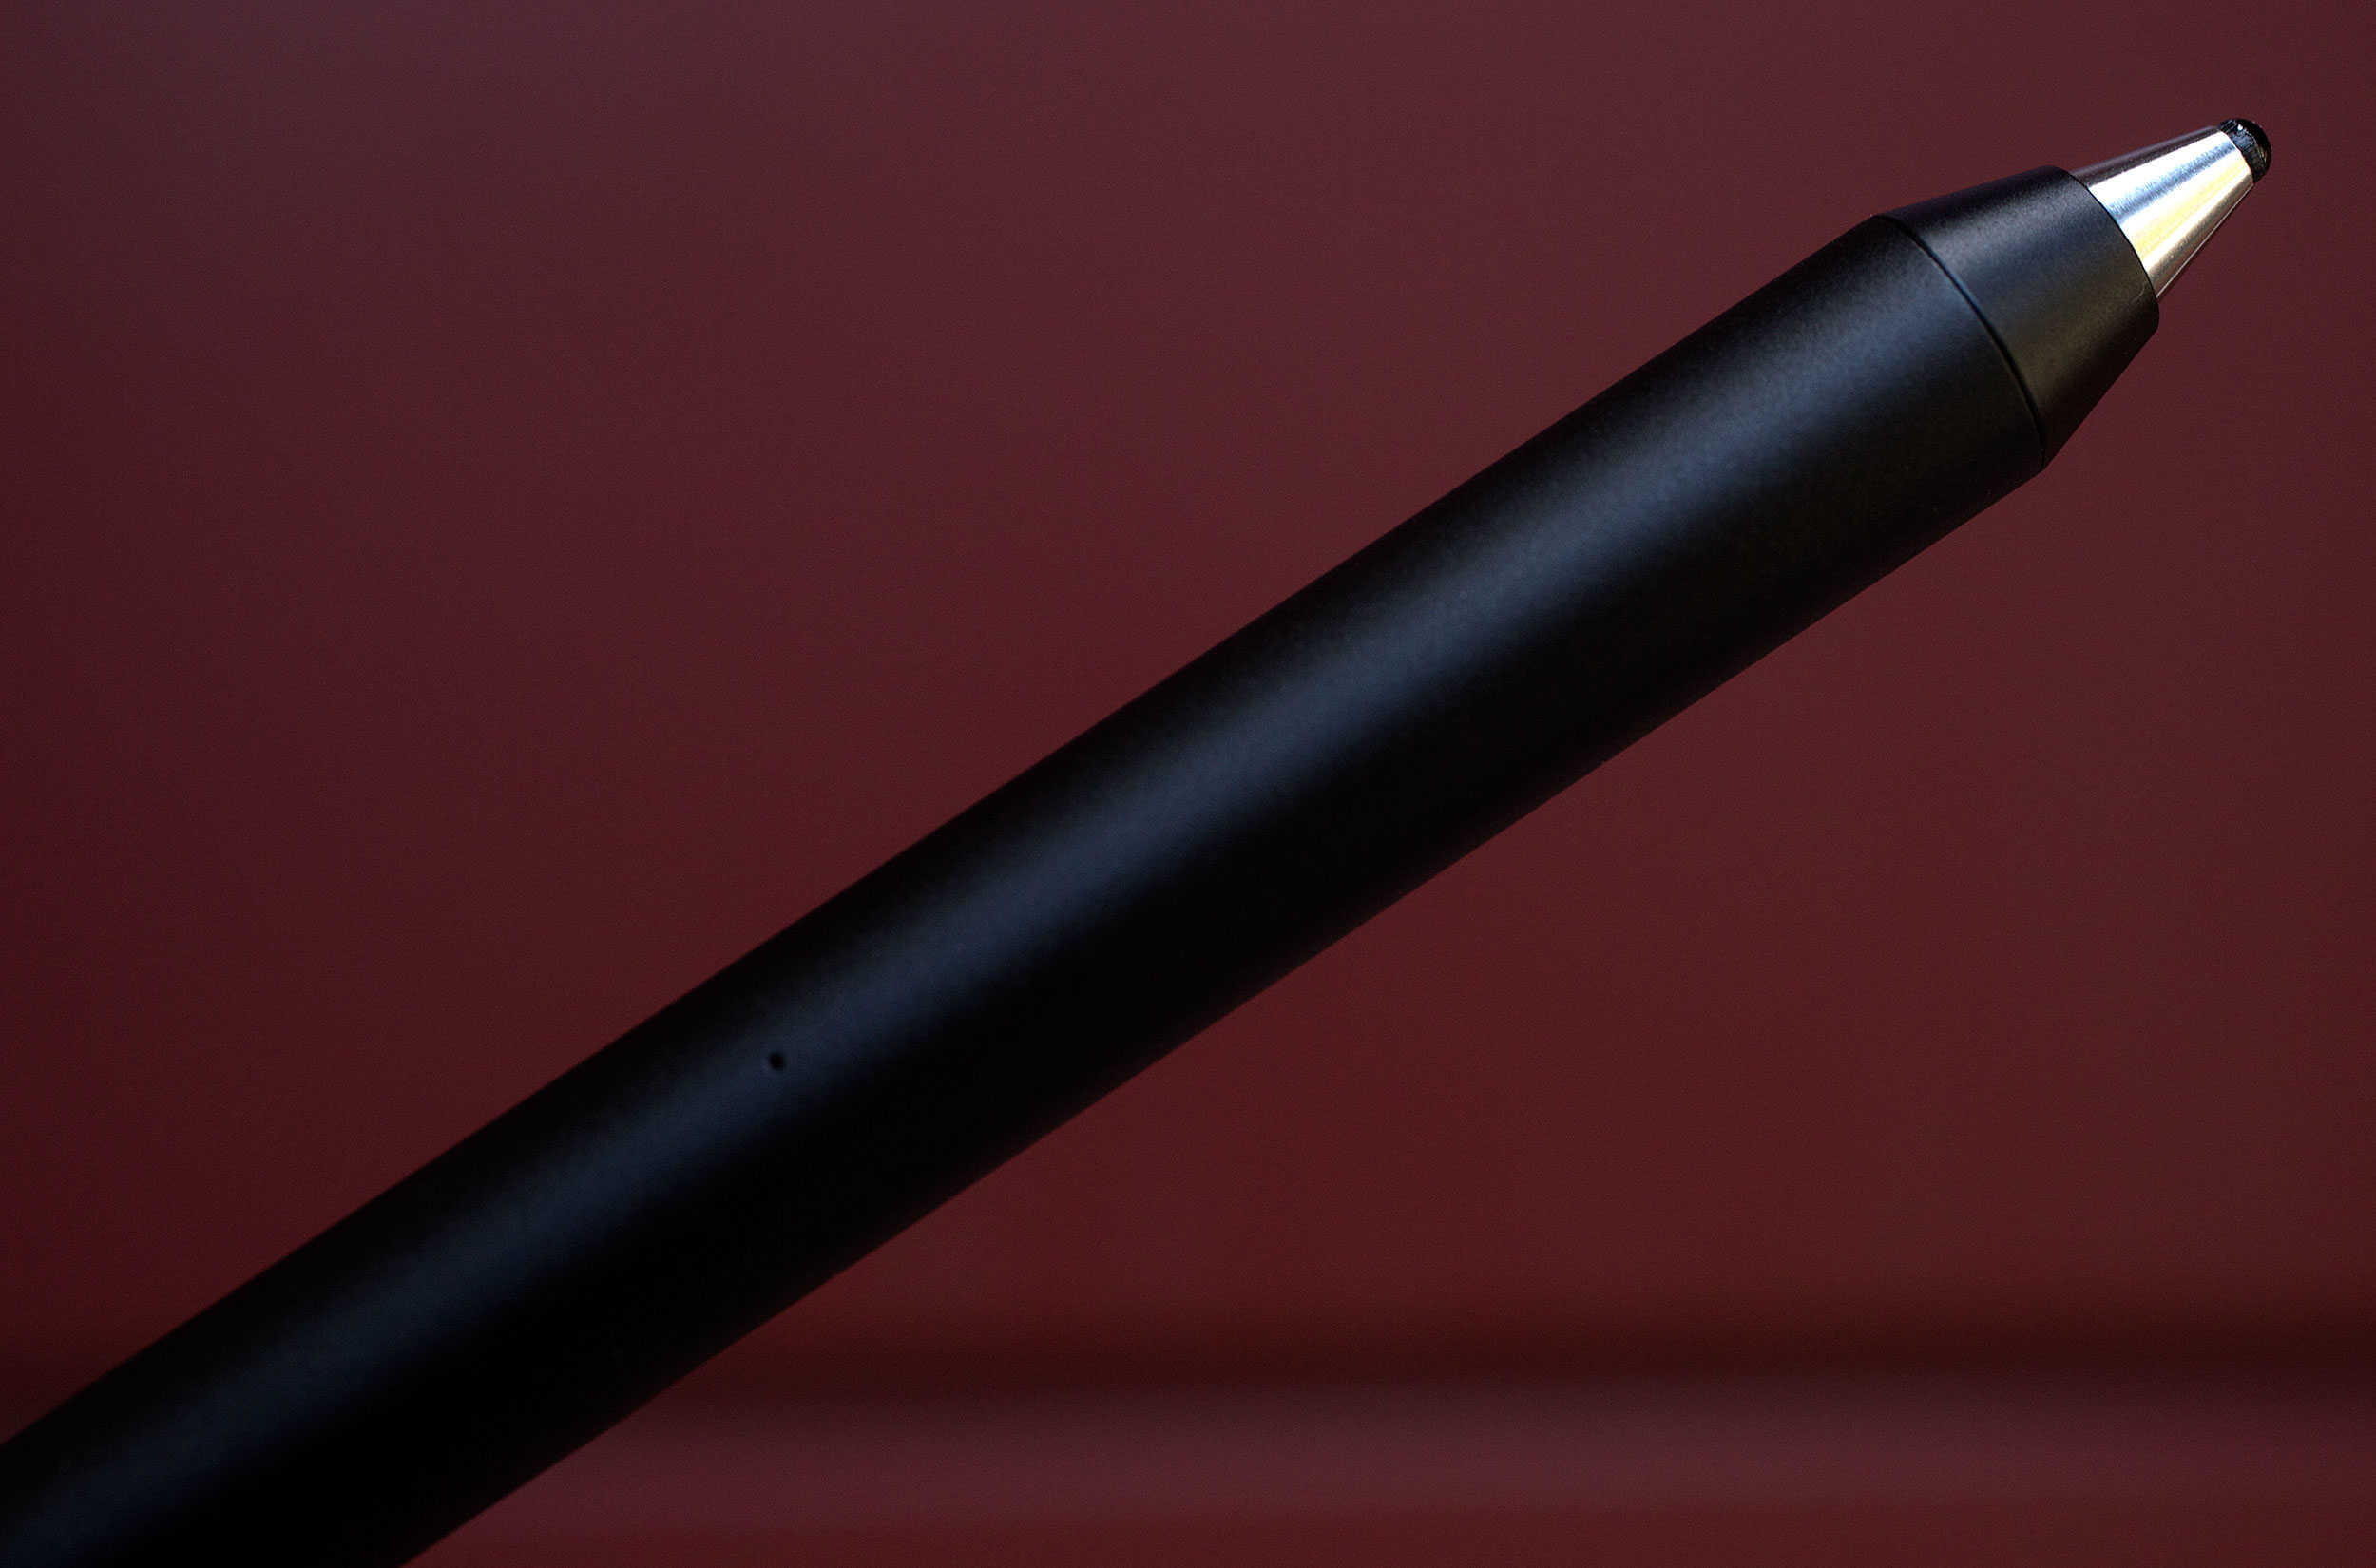 The new Jot Dash stylus works anywhere your finger does.